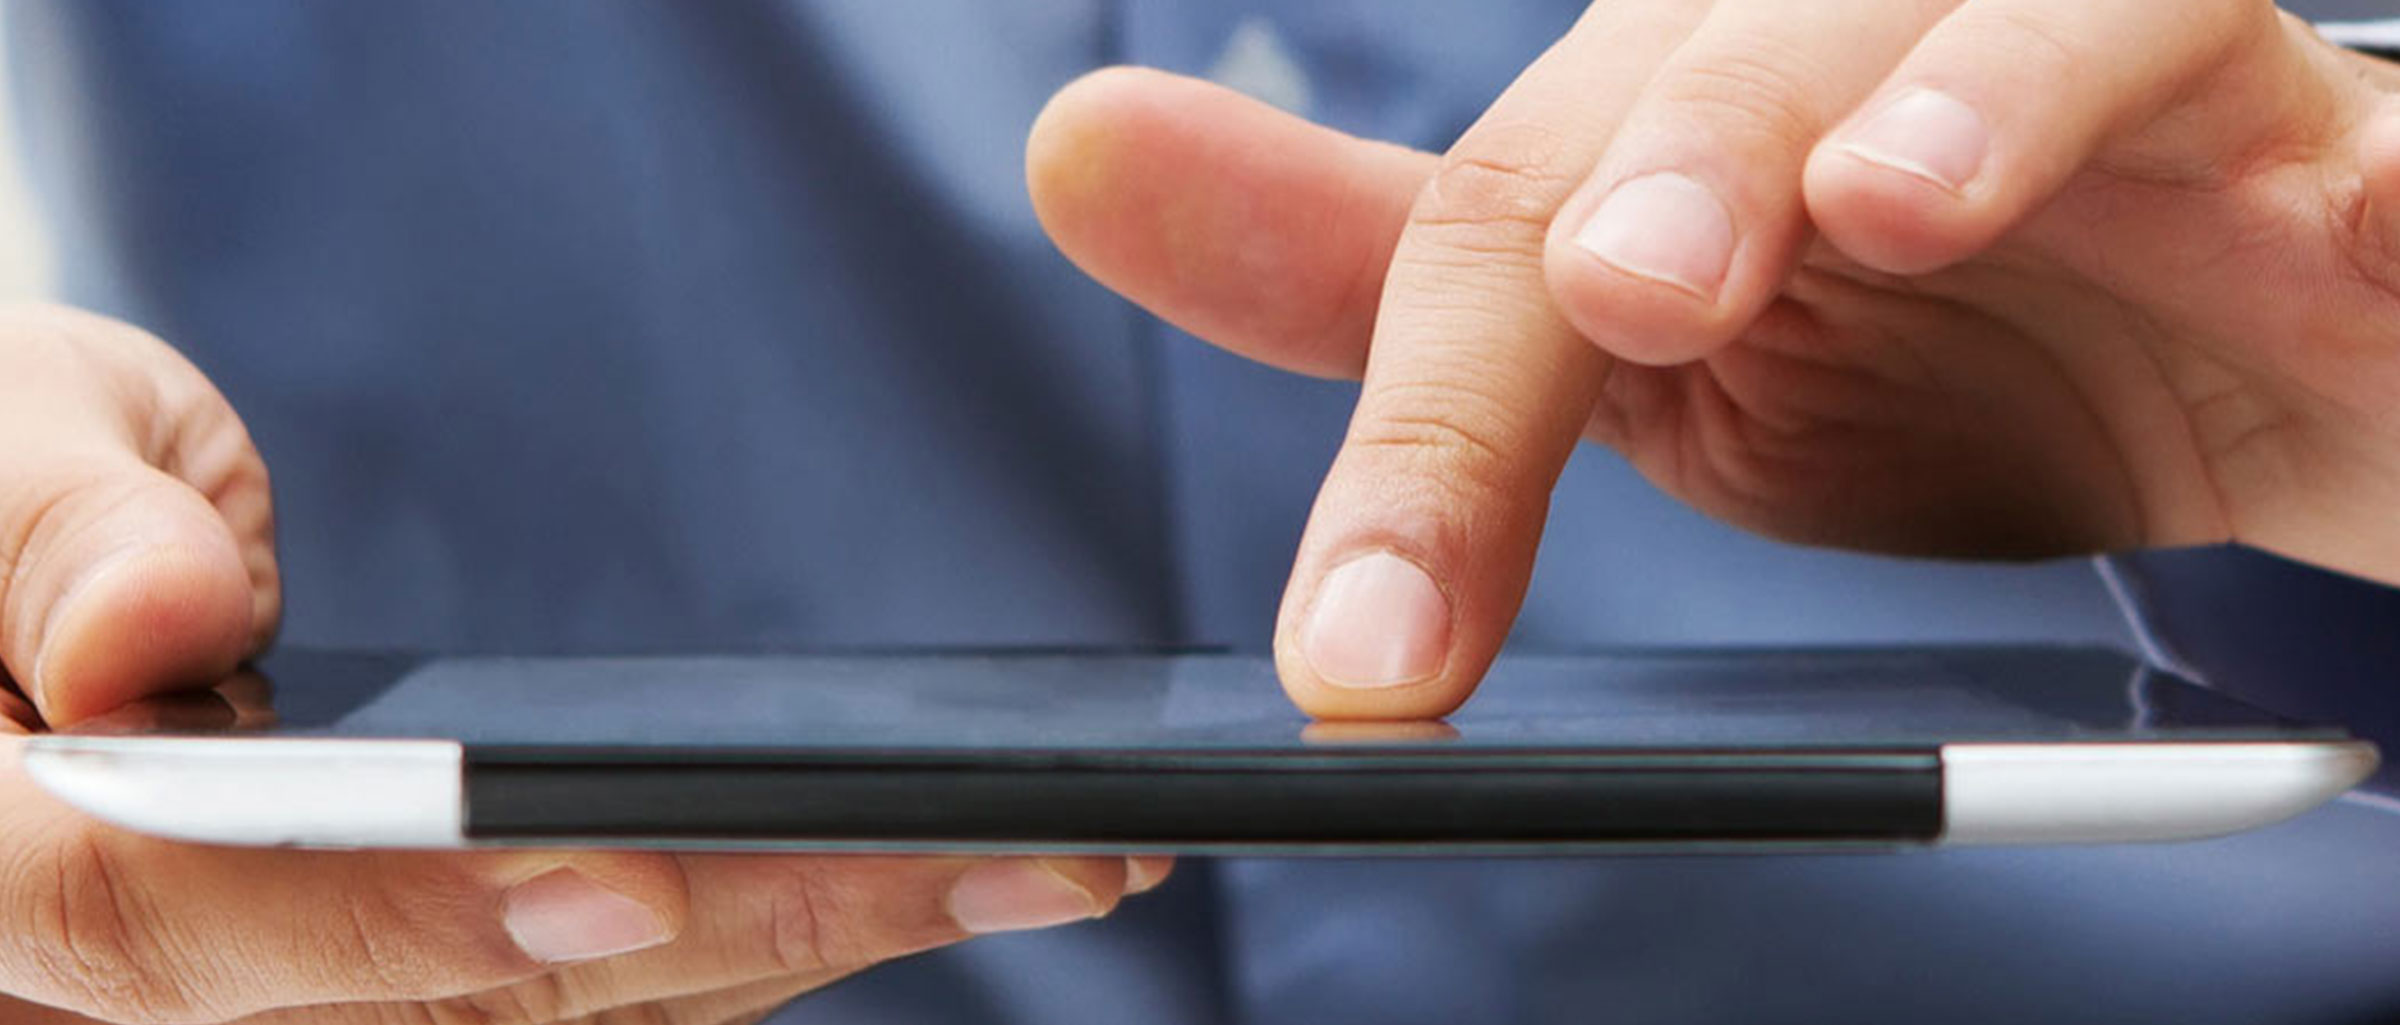 A person with a finger on a tablet device they are holding flat in their other hand